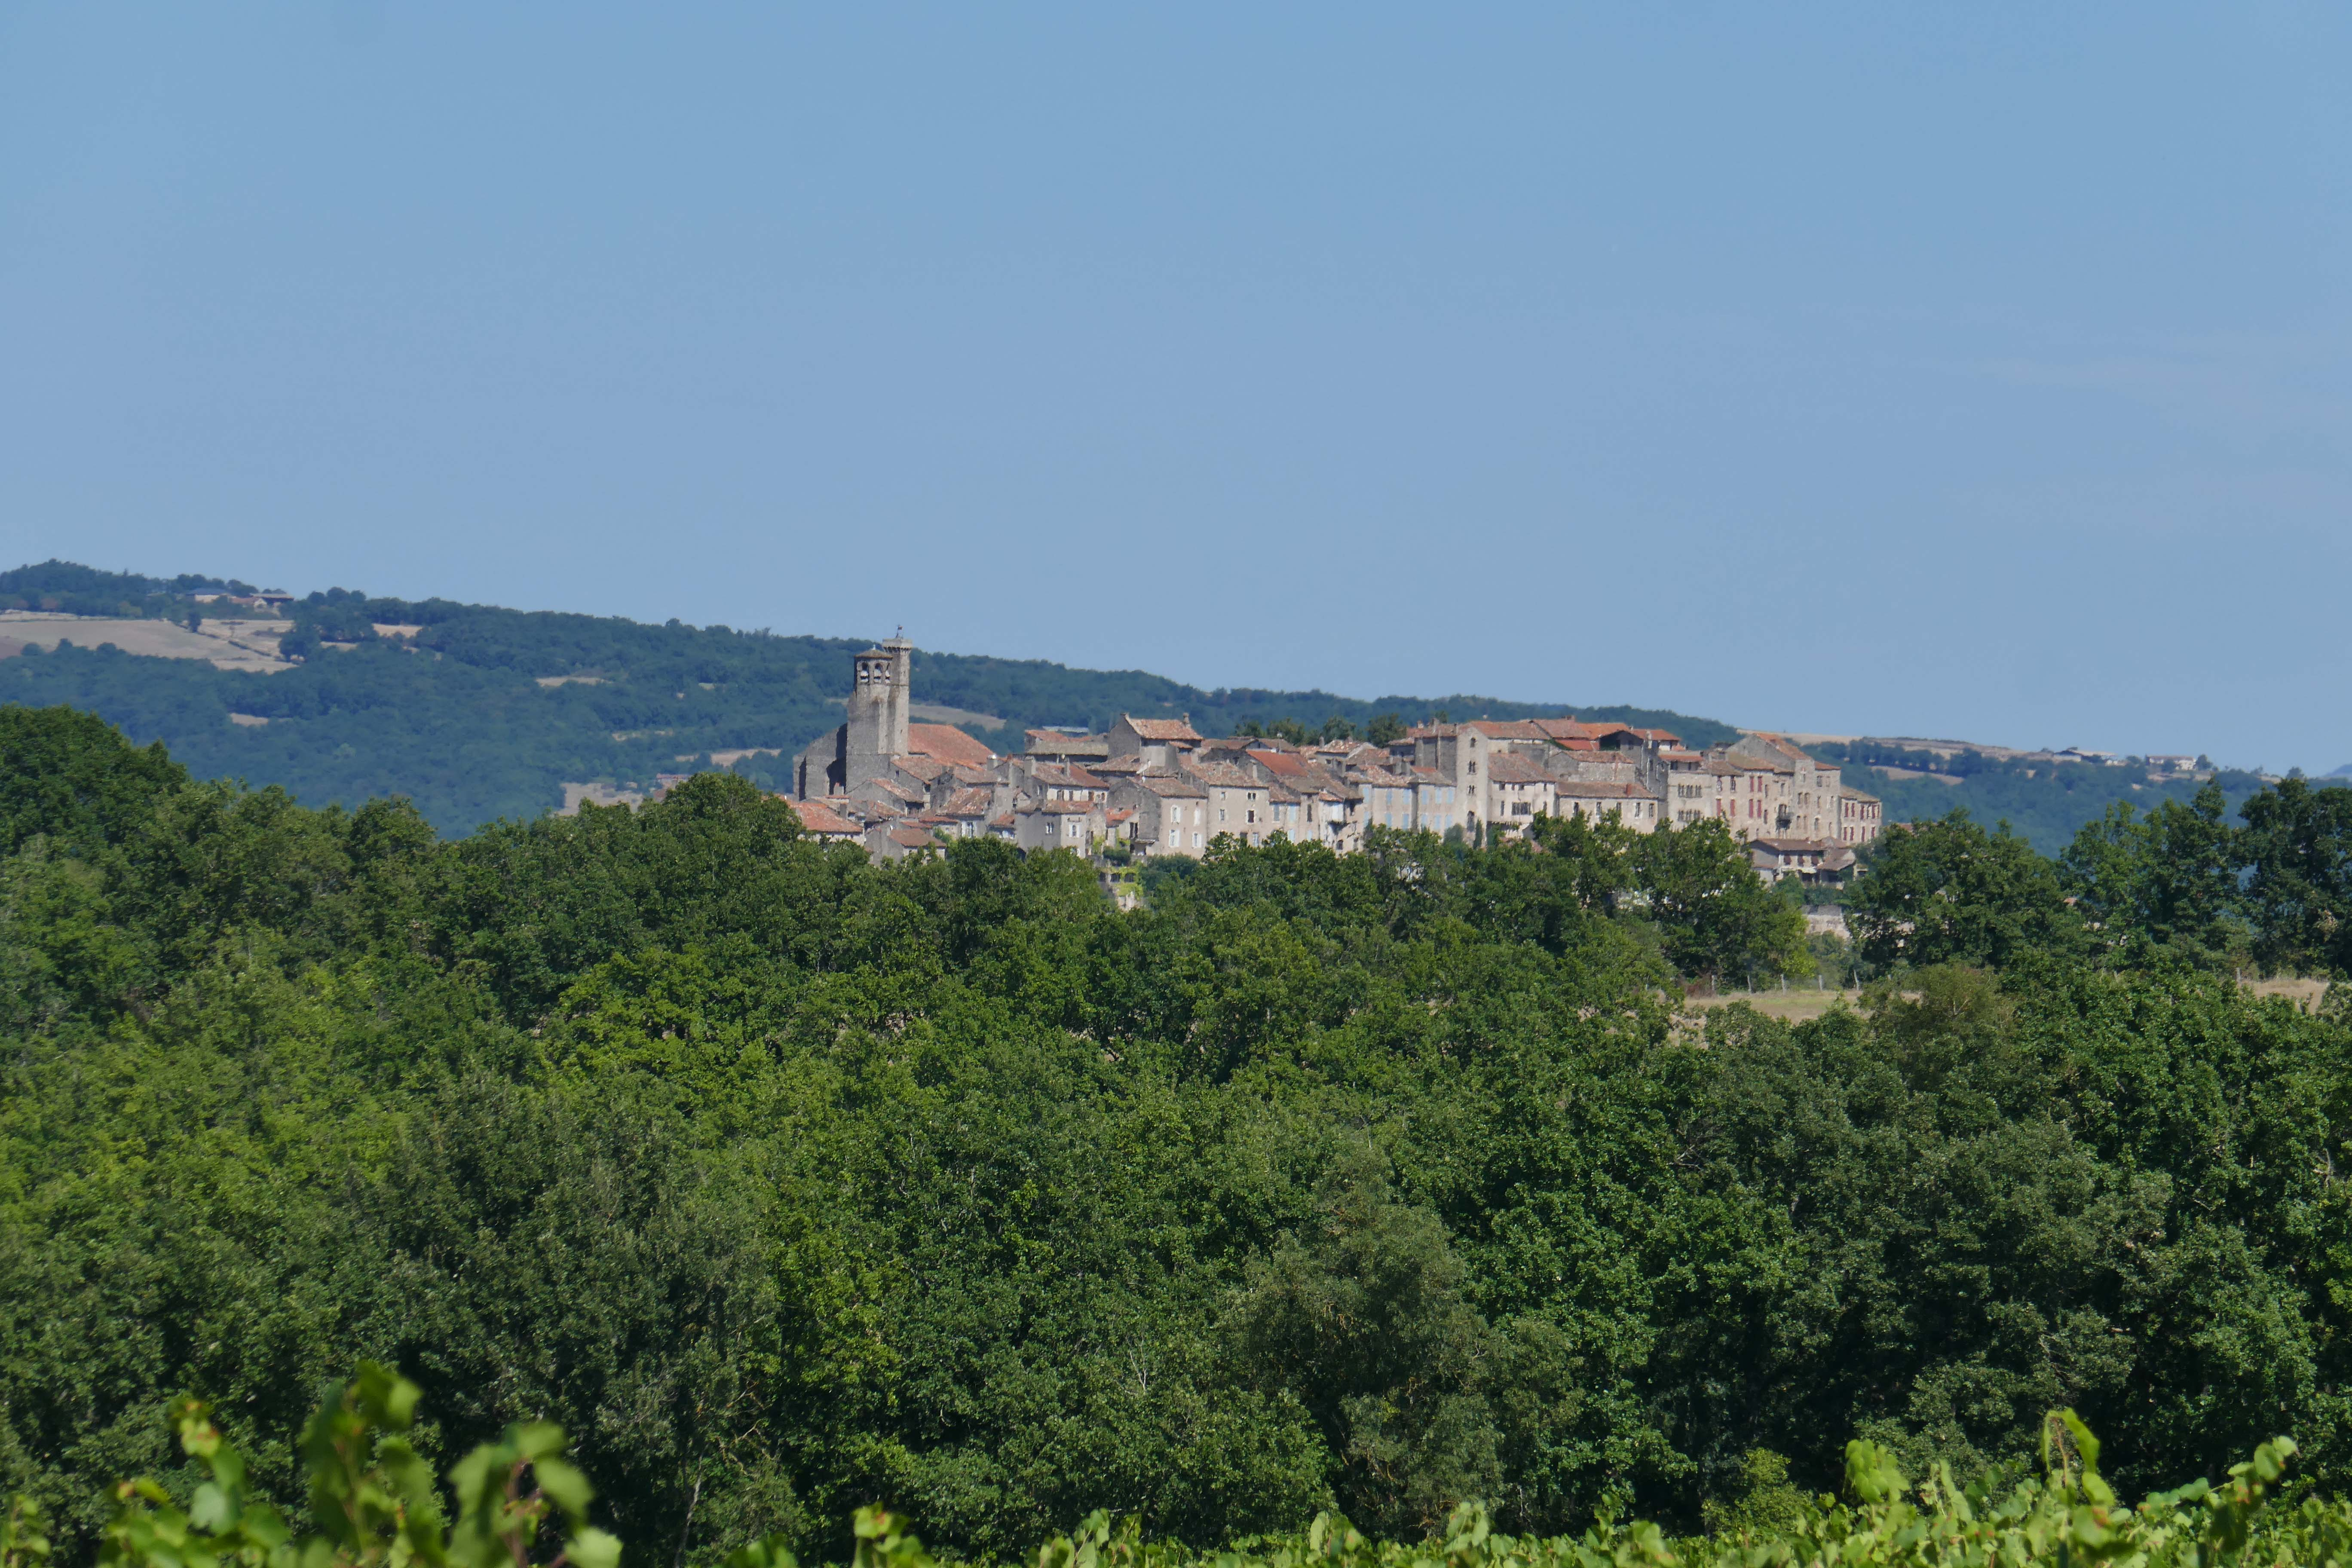 Approaching a hilltop town in the south of France